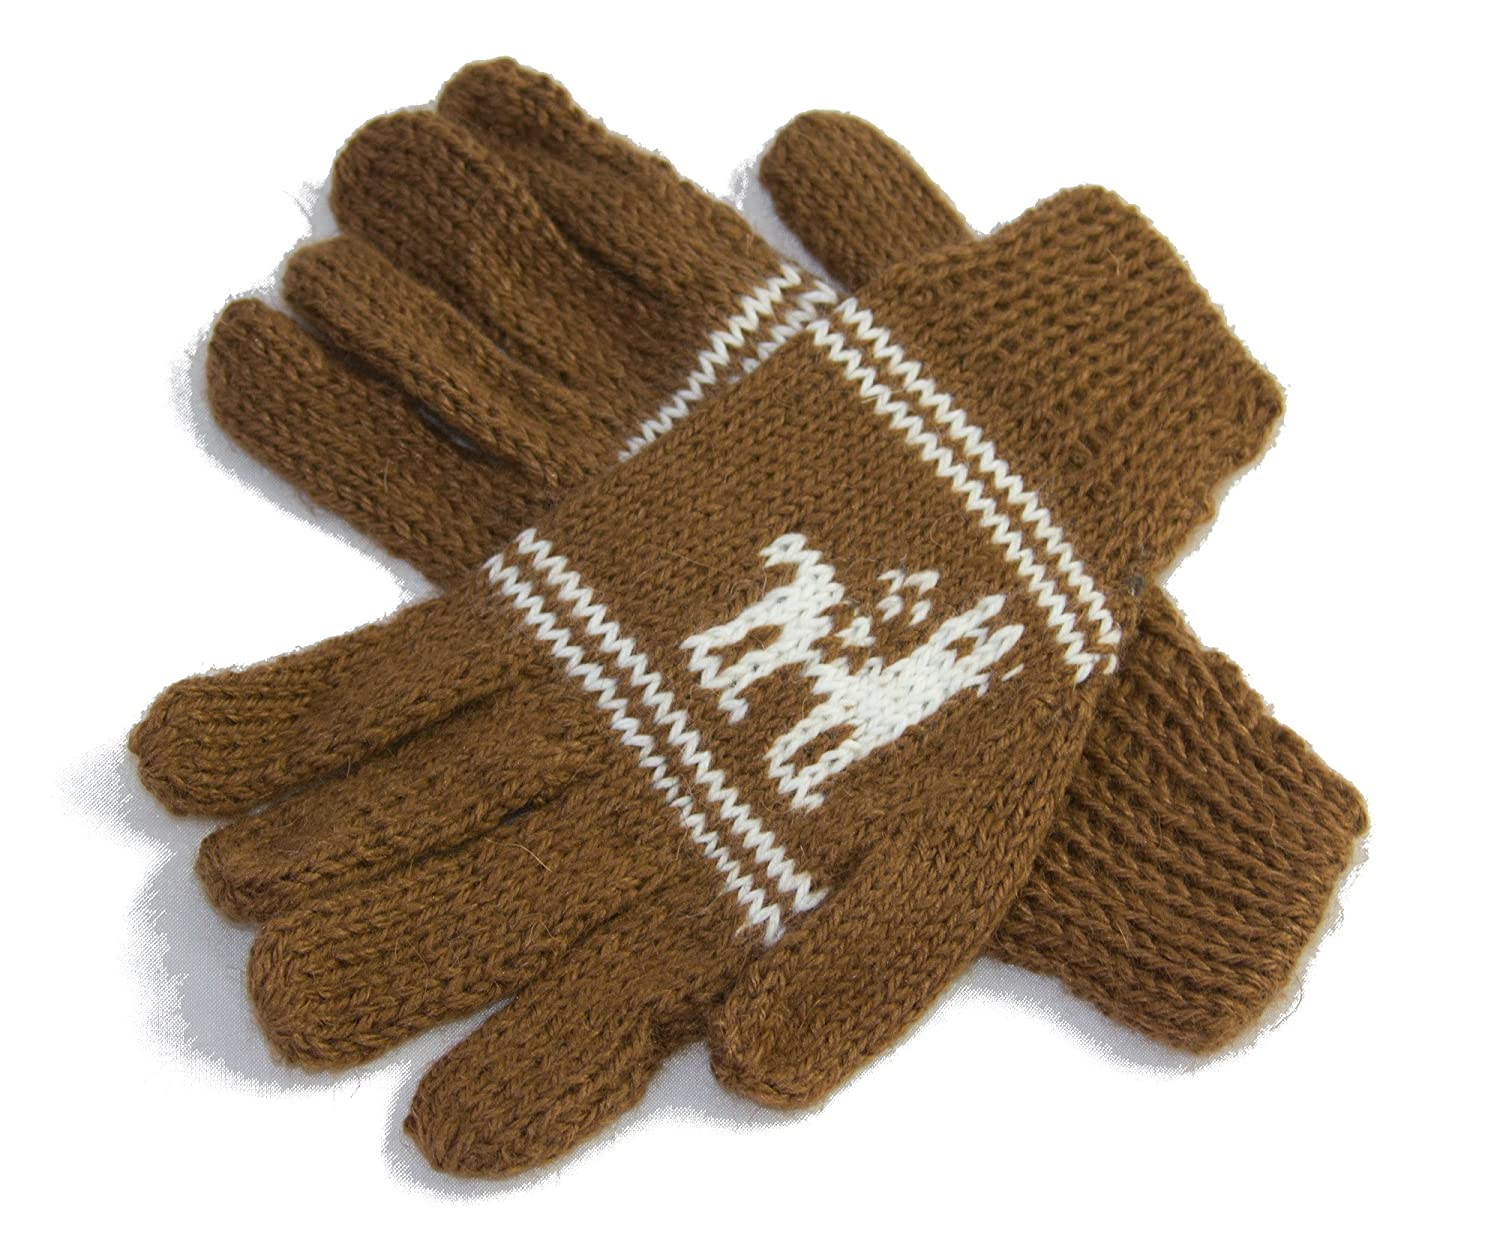 Alpaca Child's Gloves, range of natural colours-Fair trade and ethically sourced from Bolivia, One Size